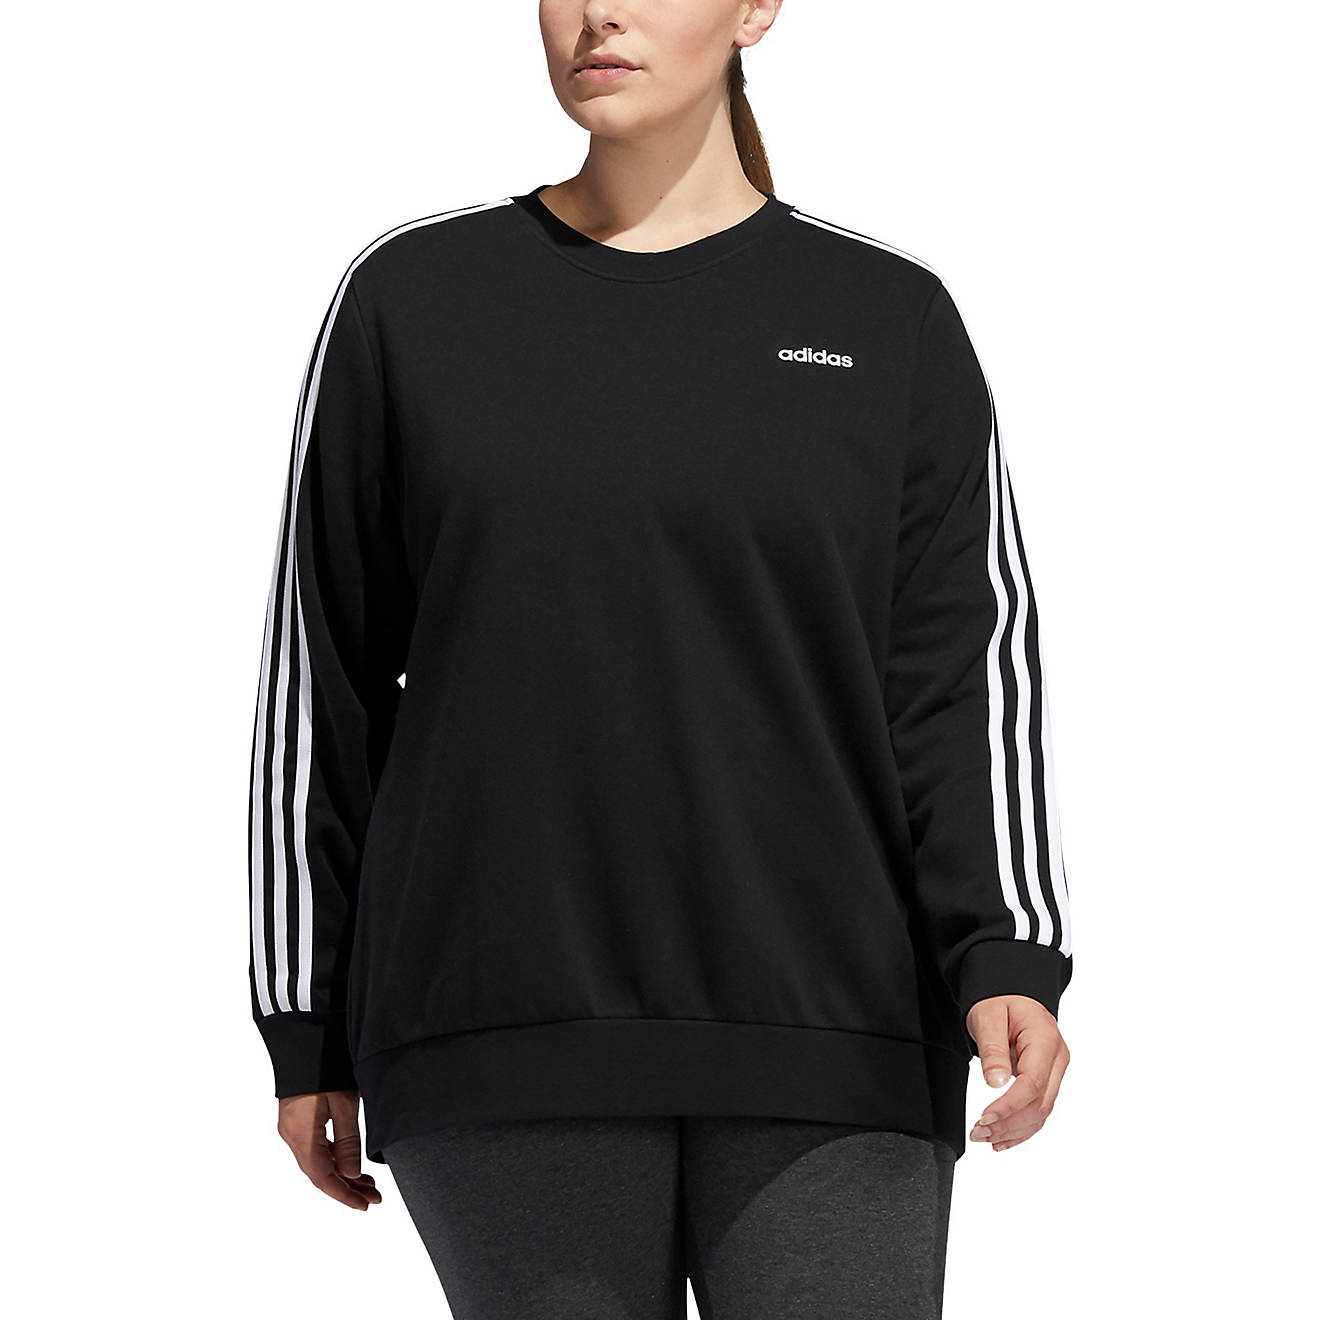 adidas Women's 3-Stripes Fleece Plus Size Sweatshirt